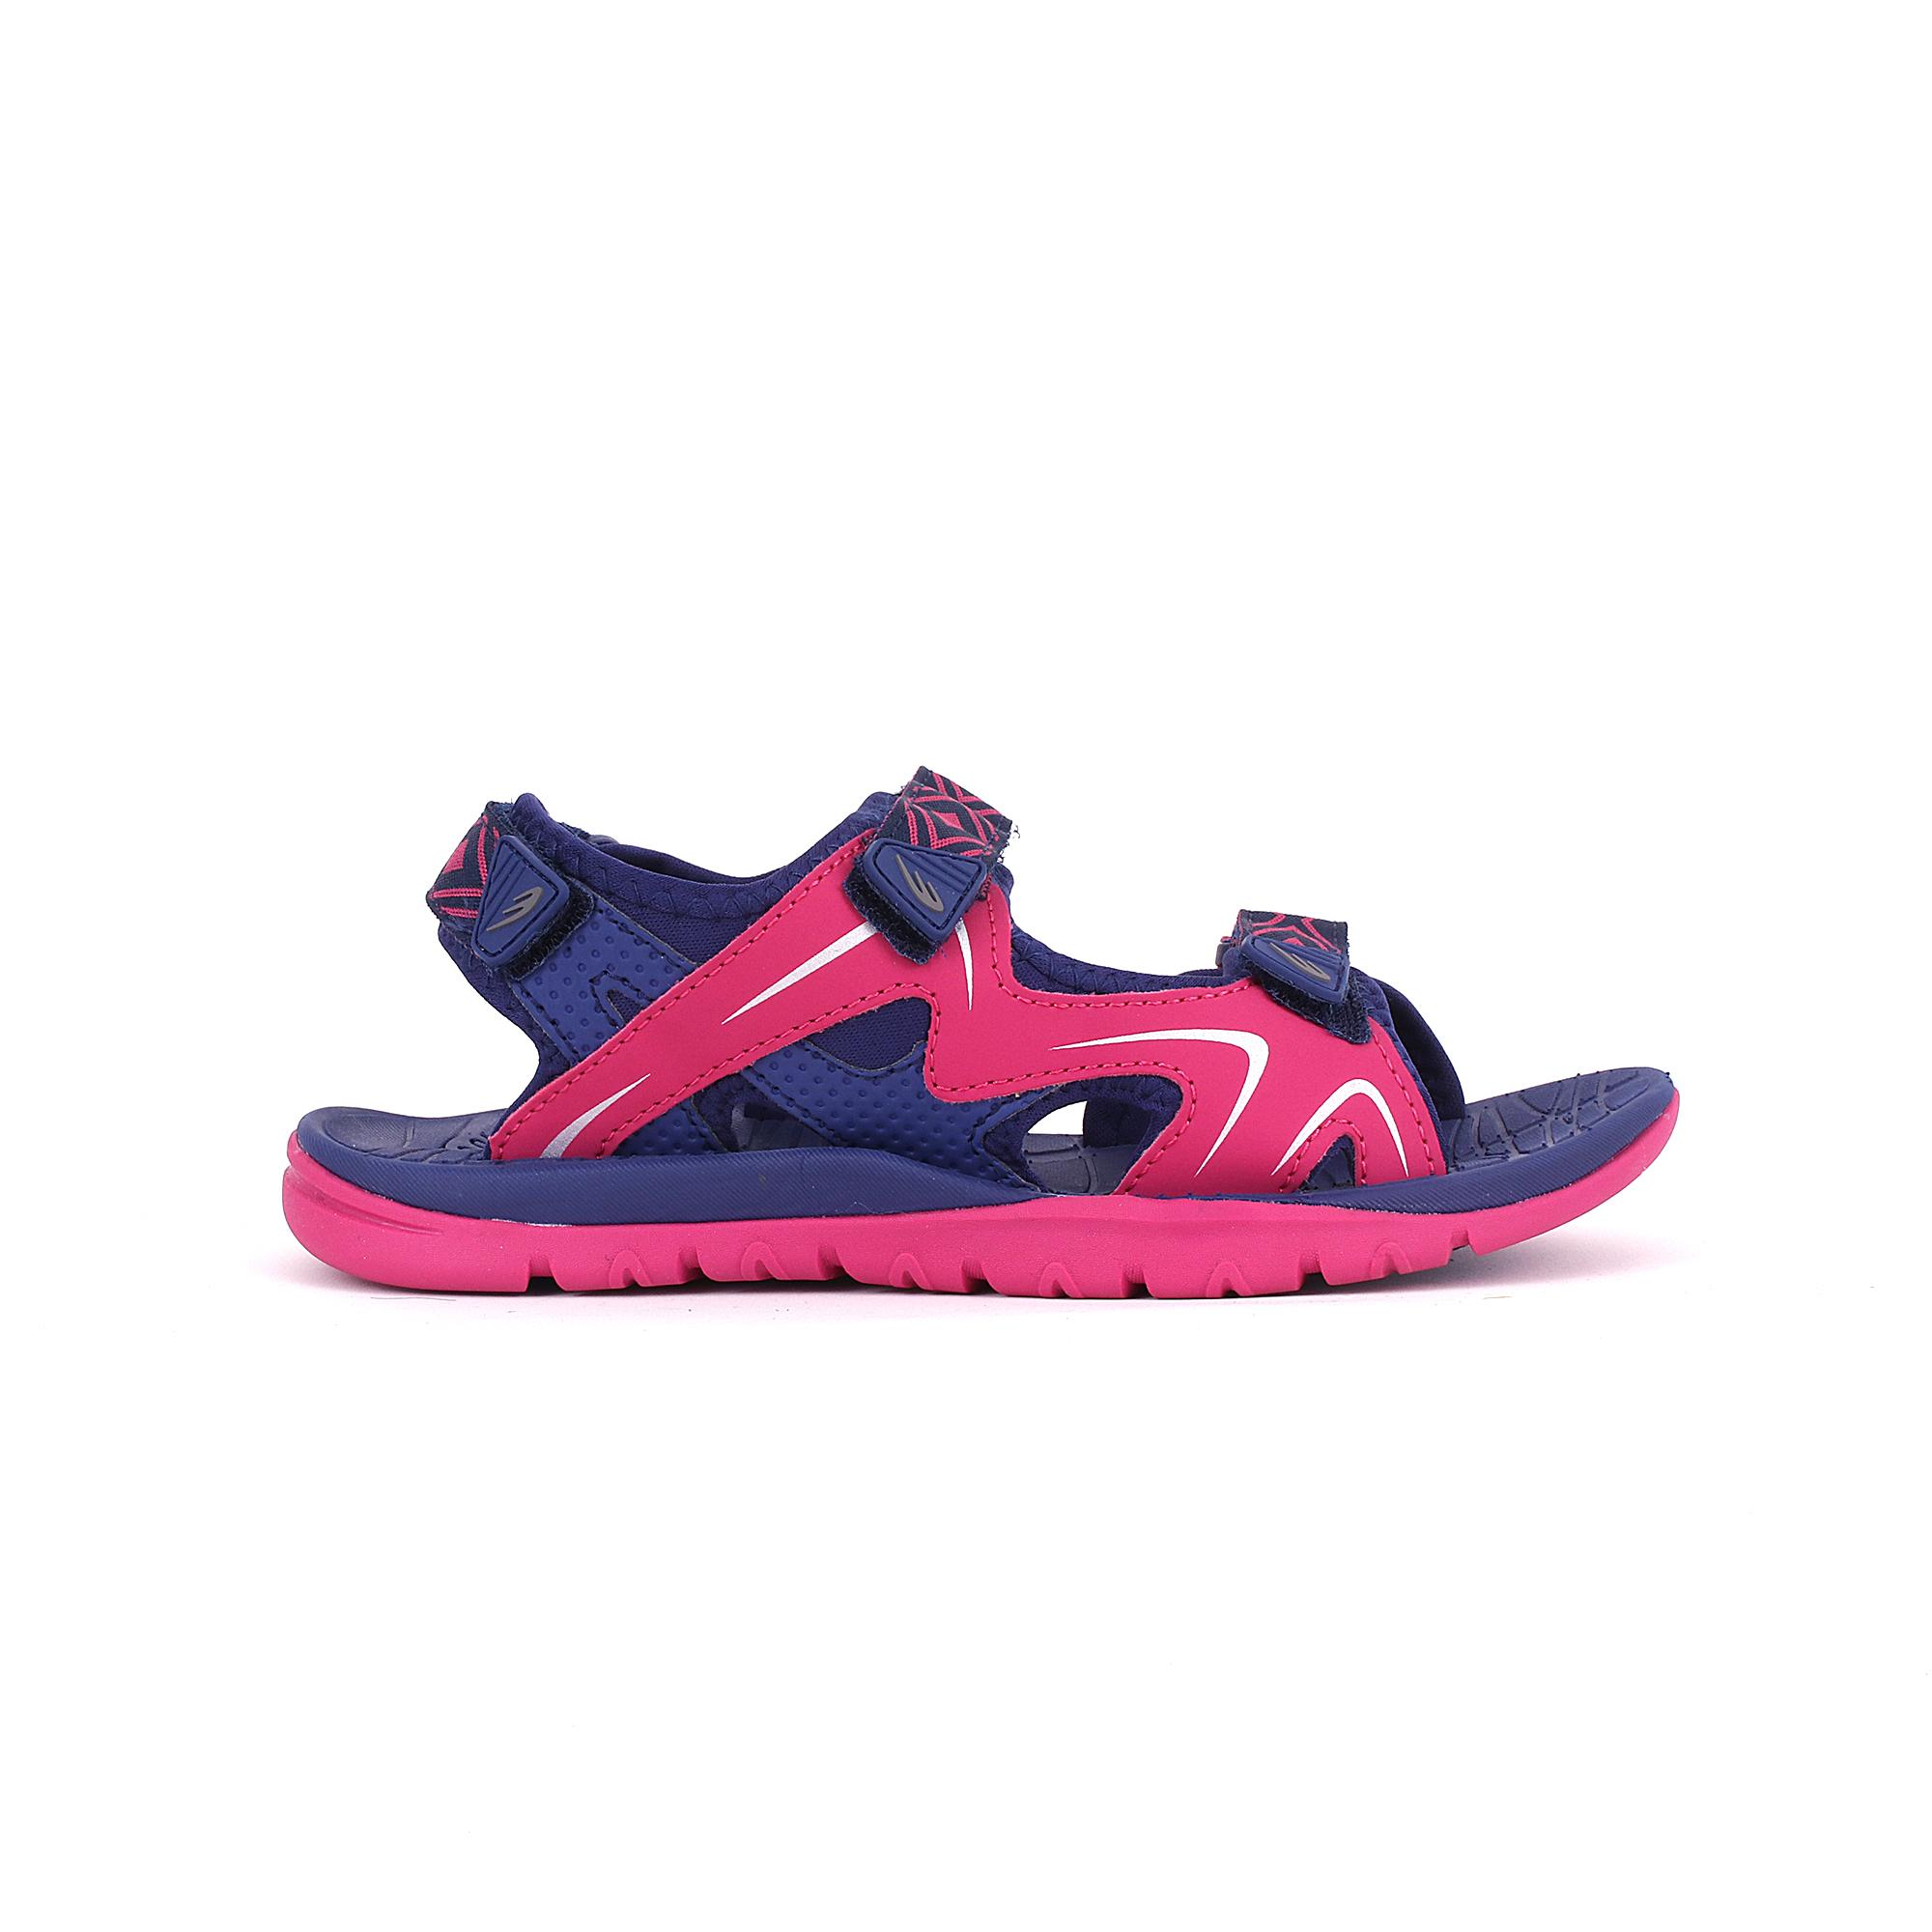 2fee82b6b3e World Balance Cliff Jumper Ladies (Fuchsia Blue)